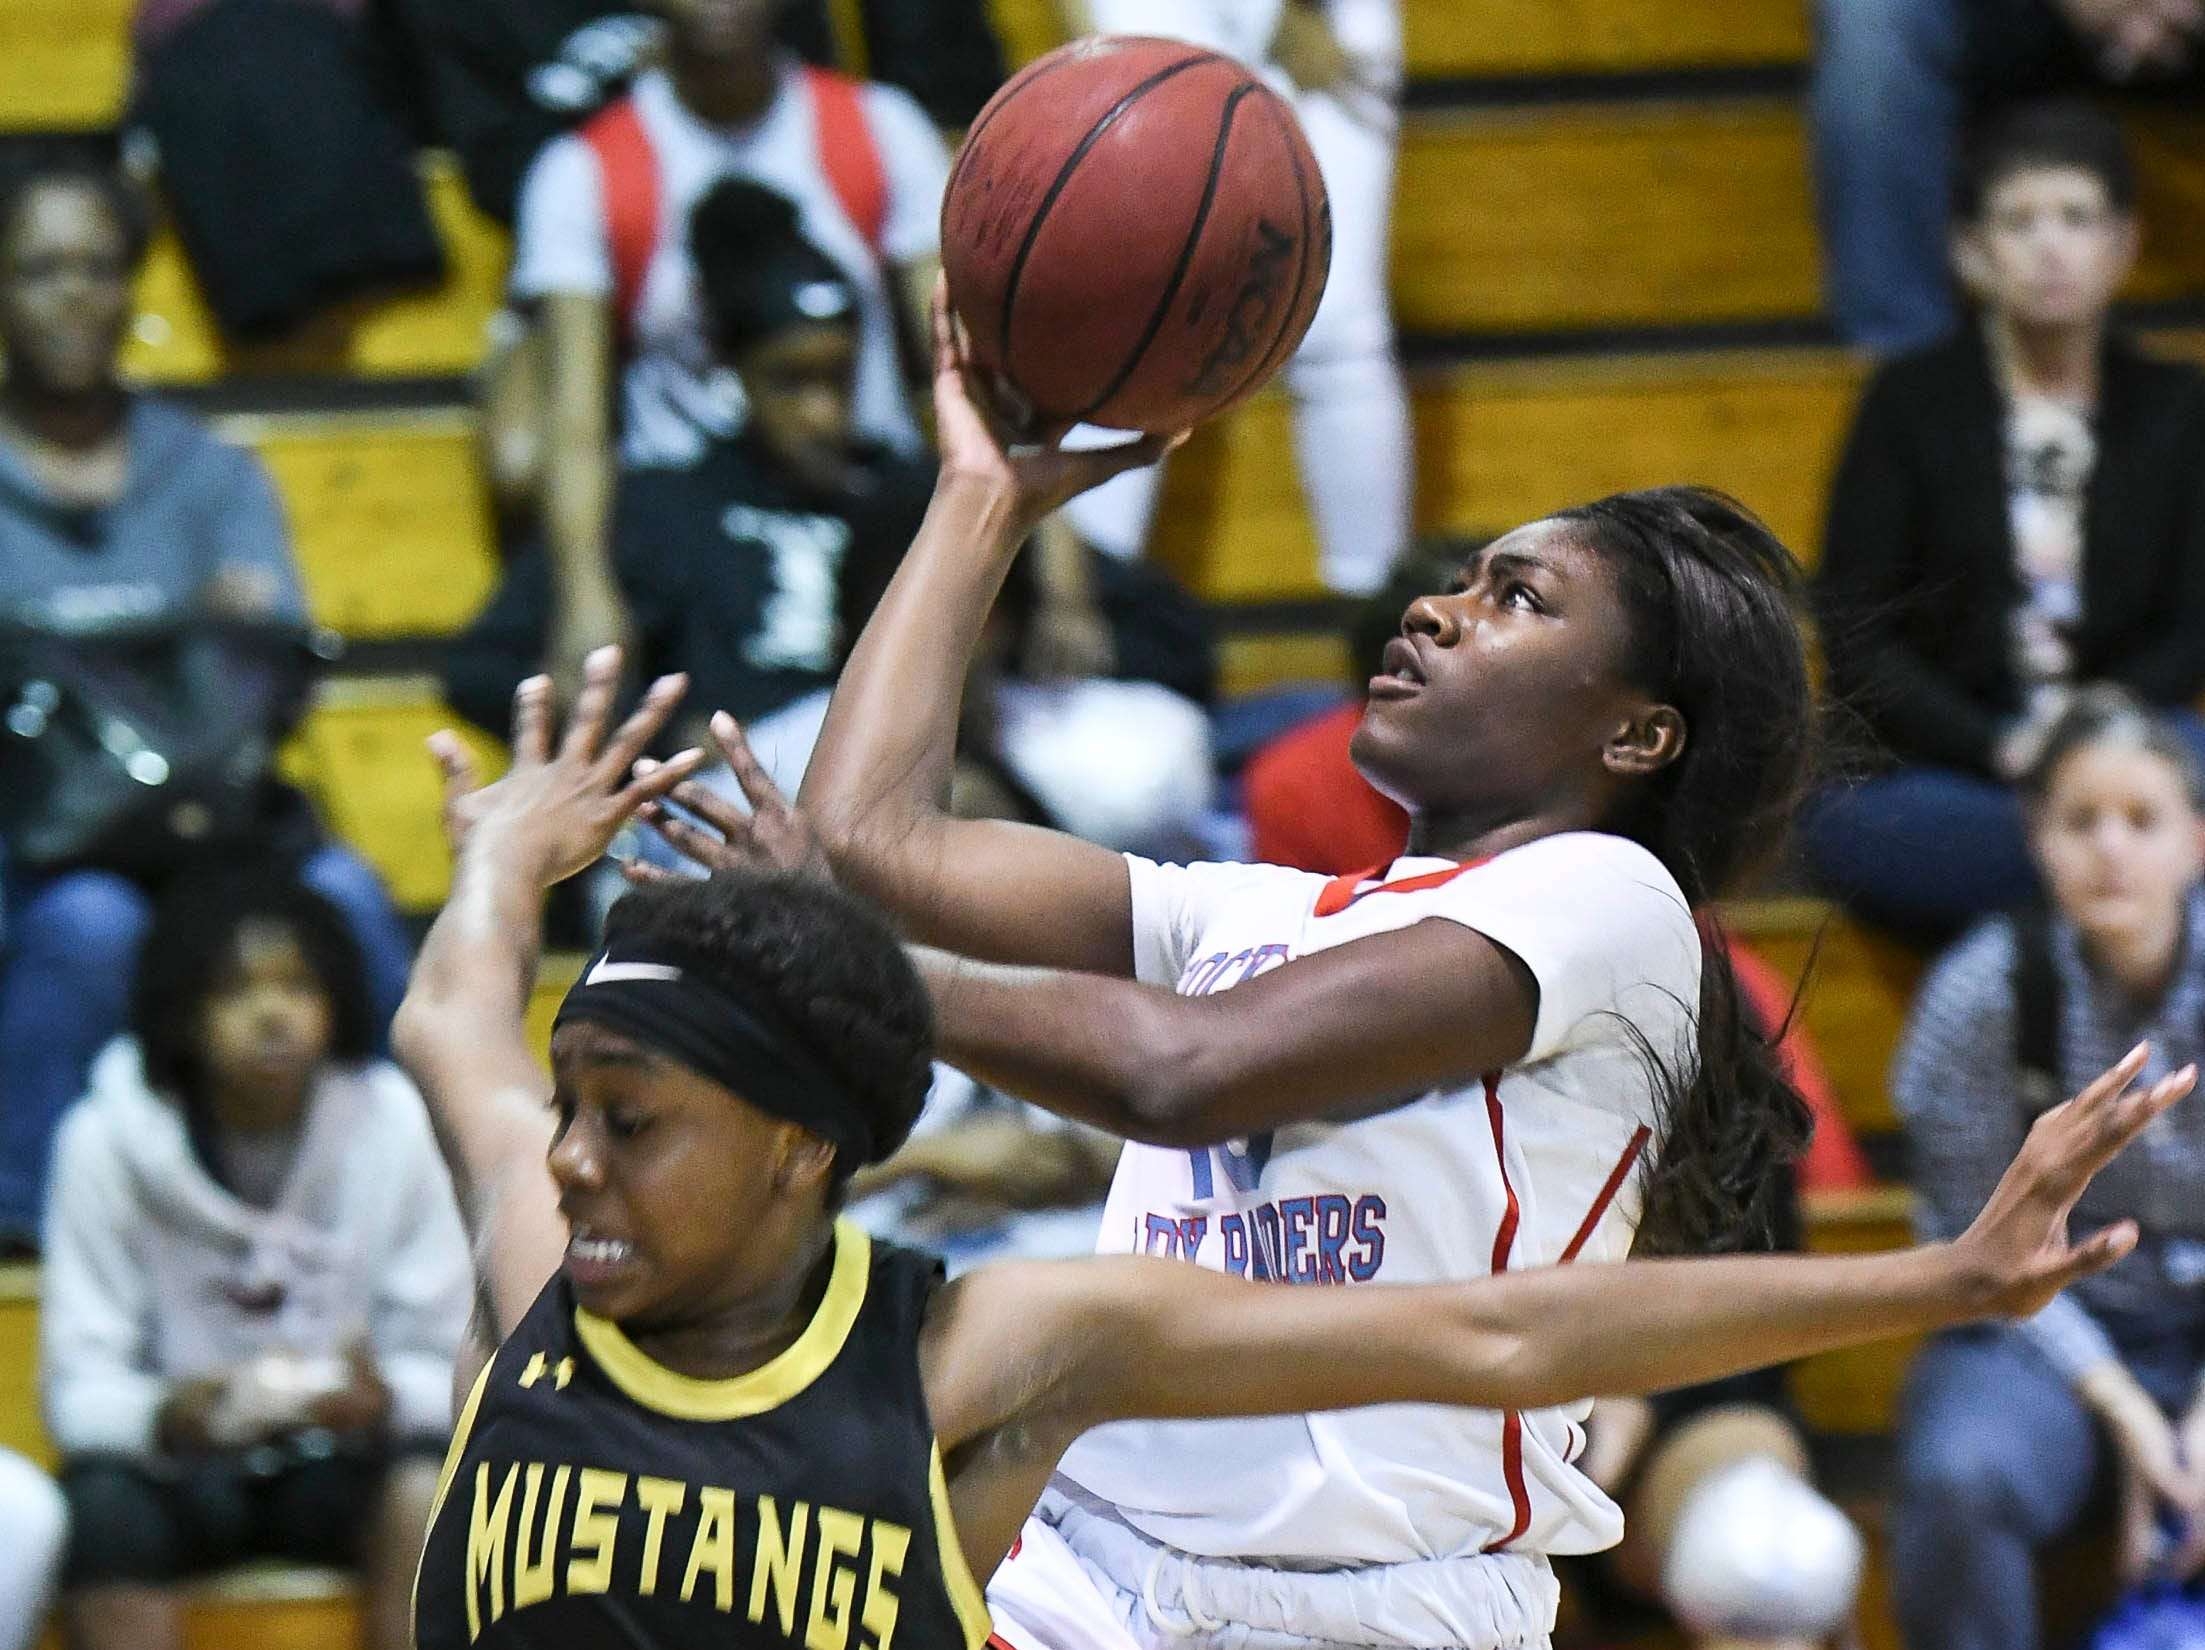 Zykeena Arthur of Rockledge shoots over the guard of Merritt Island's Essynce Hall during Thursday's District 14-6A basketball tournament semifinal at Rockledge High School.